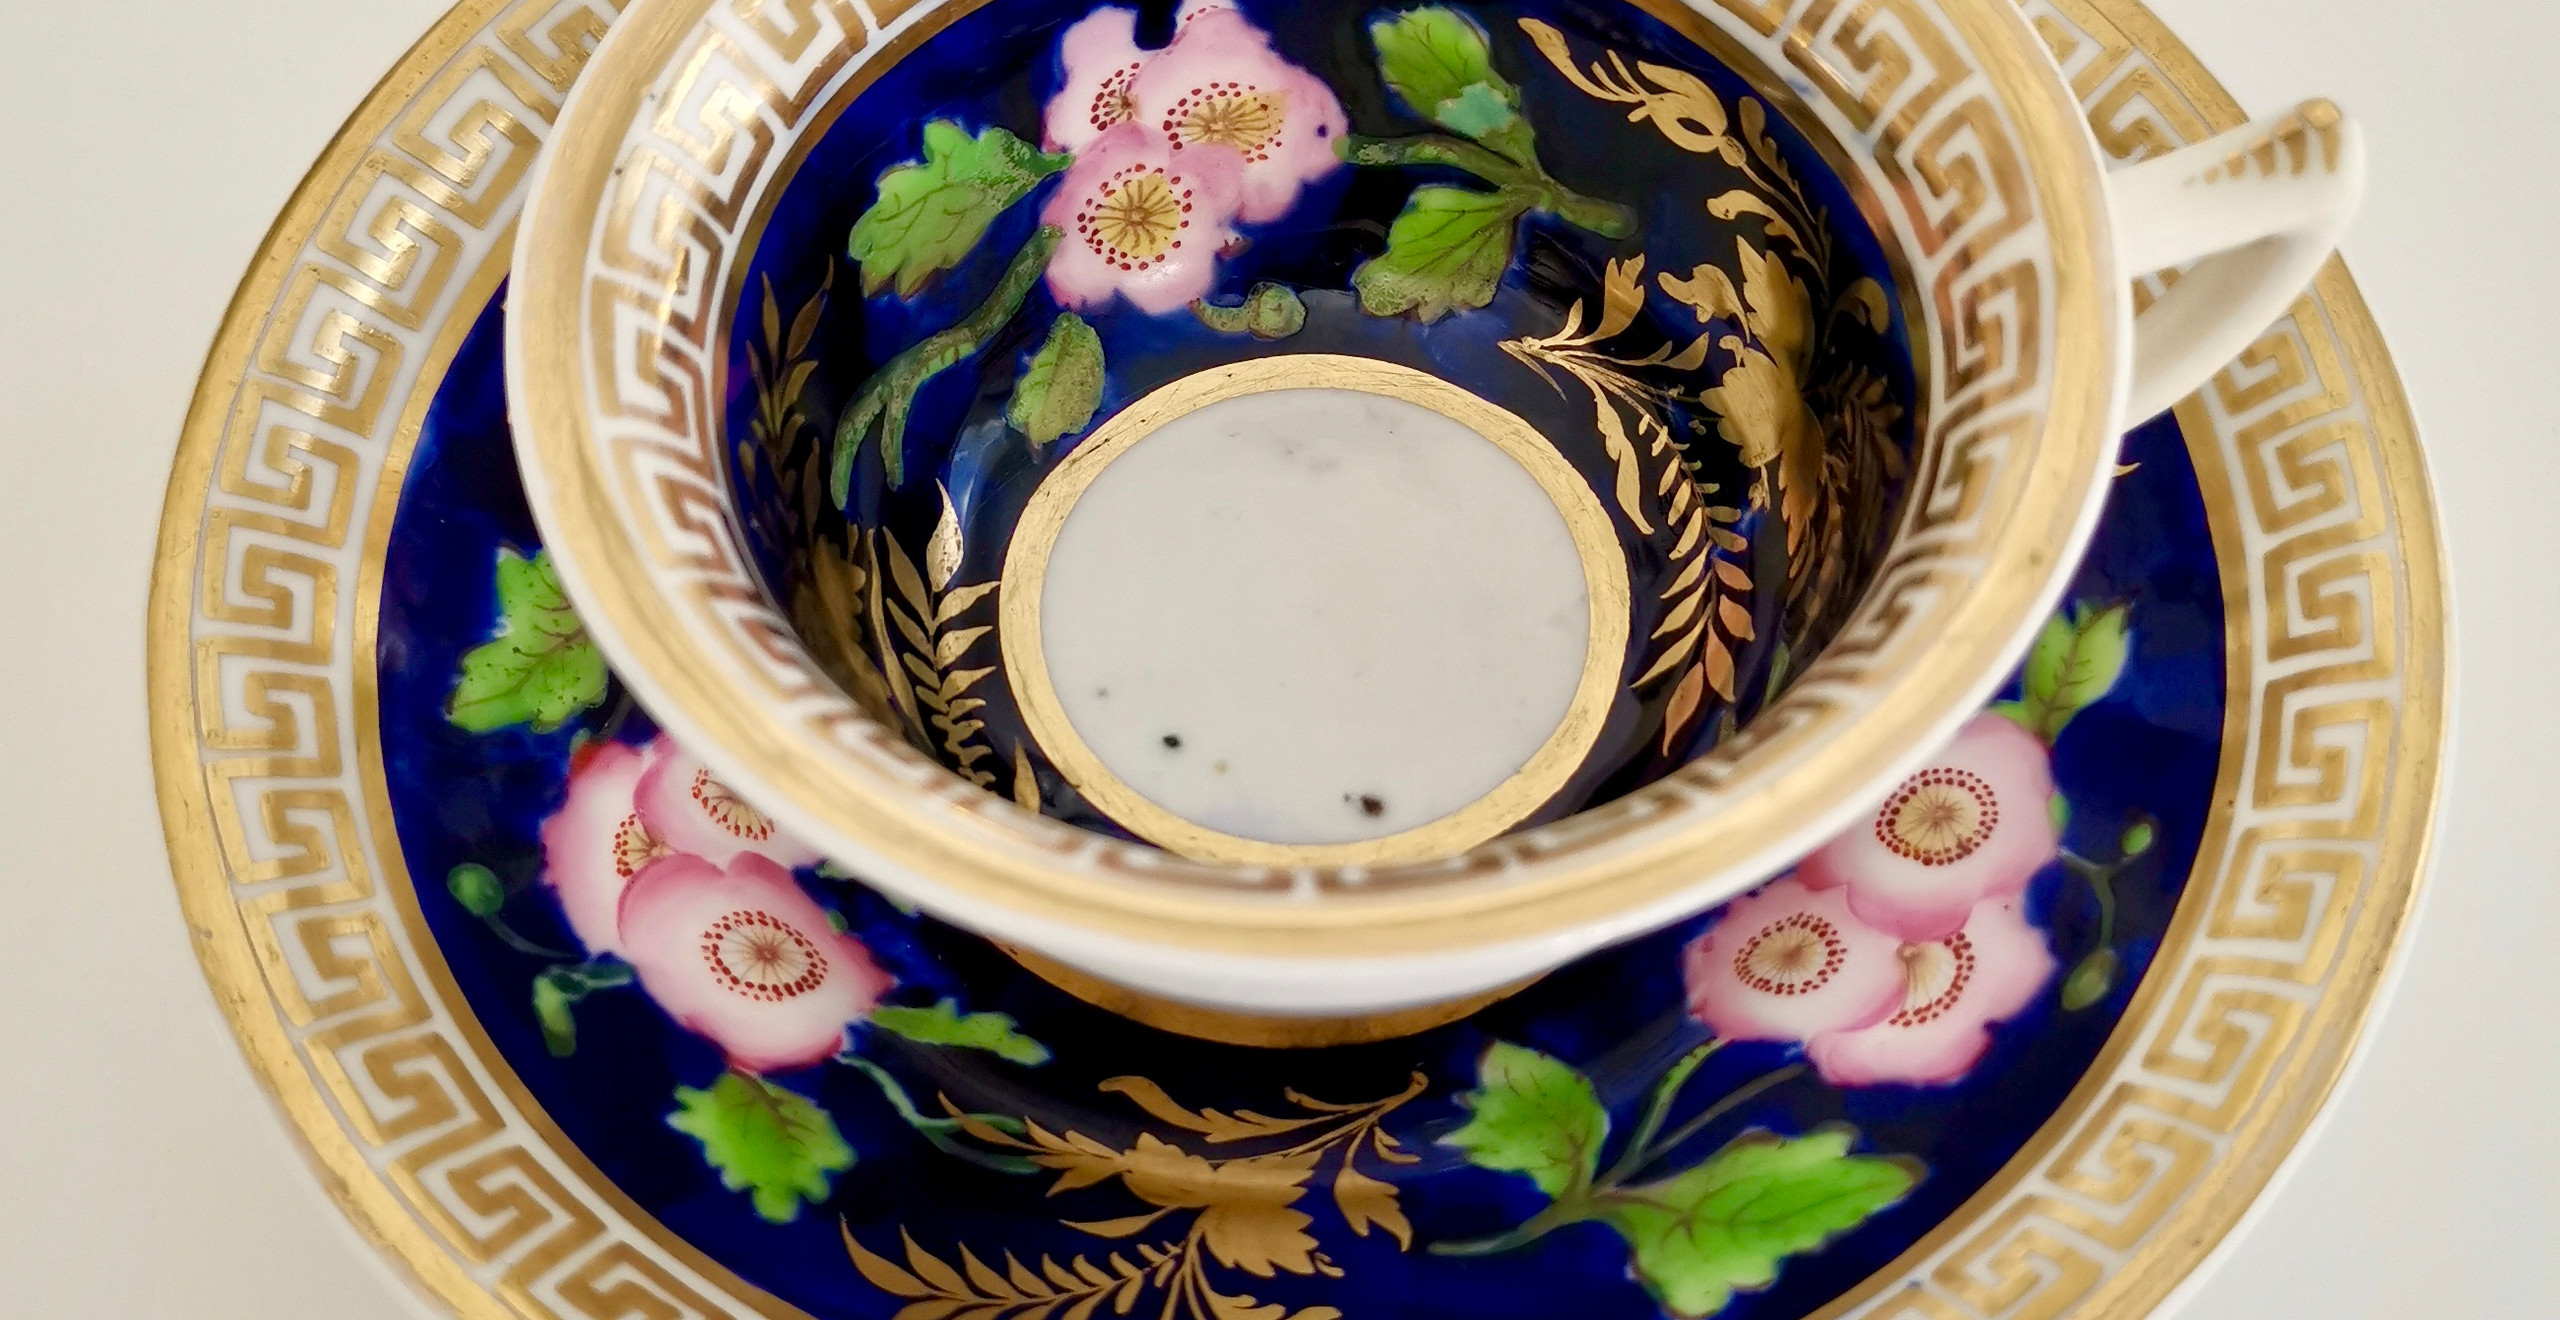 Hilditch teacup with dog roses ca 1820